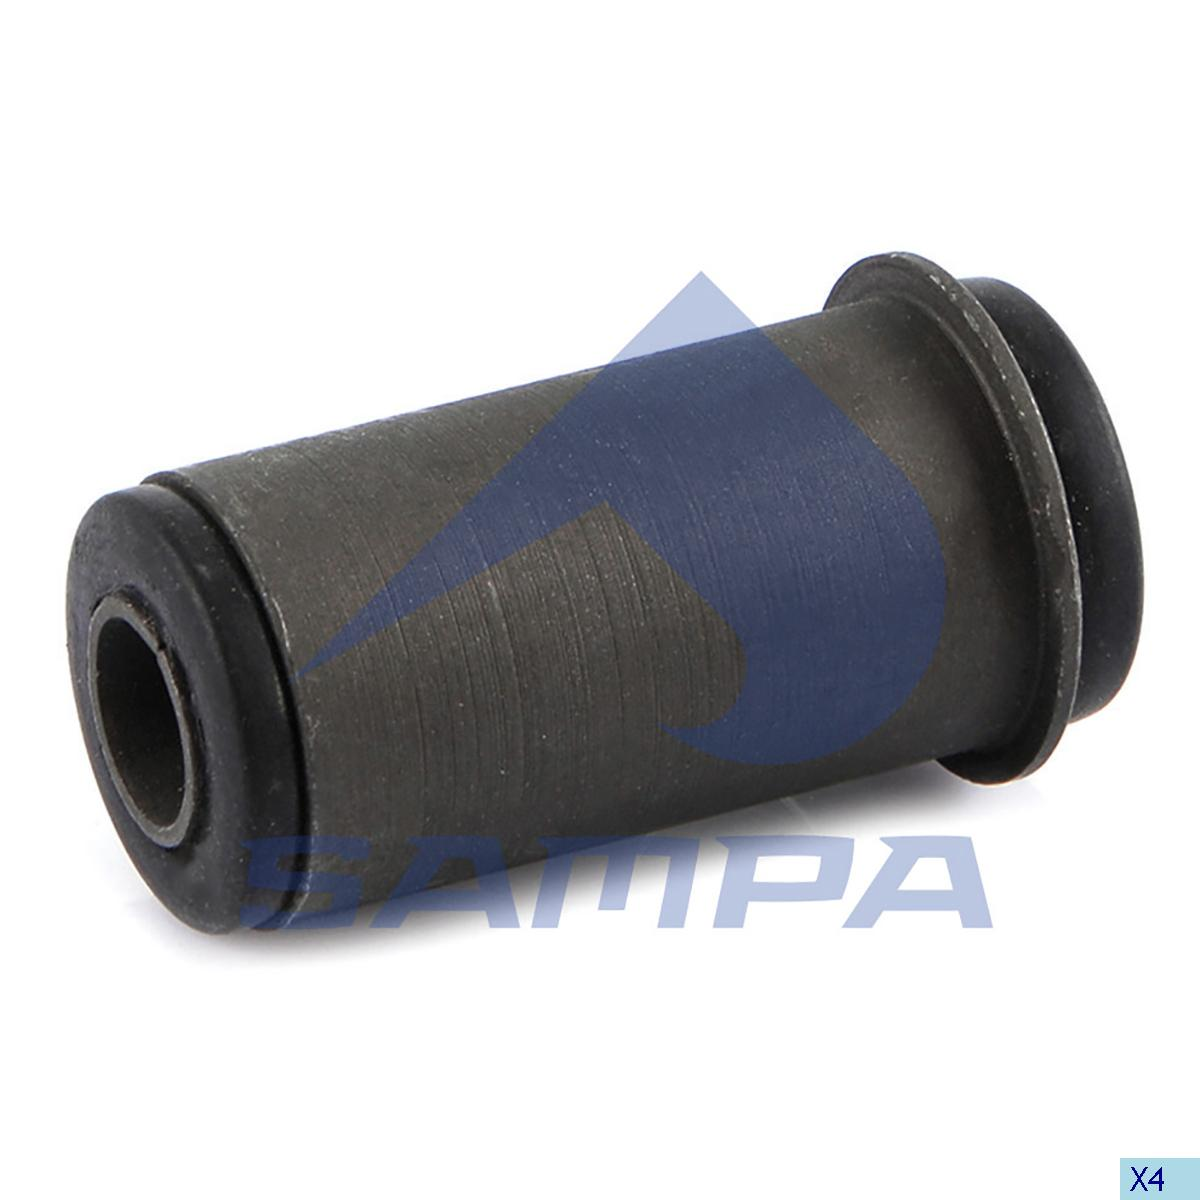 Rubber Bushing, Spring, Chevrolet, Suspension